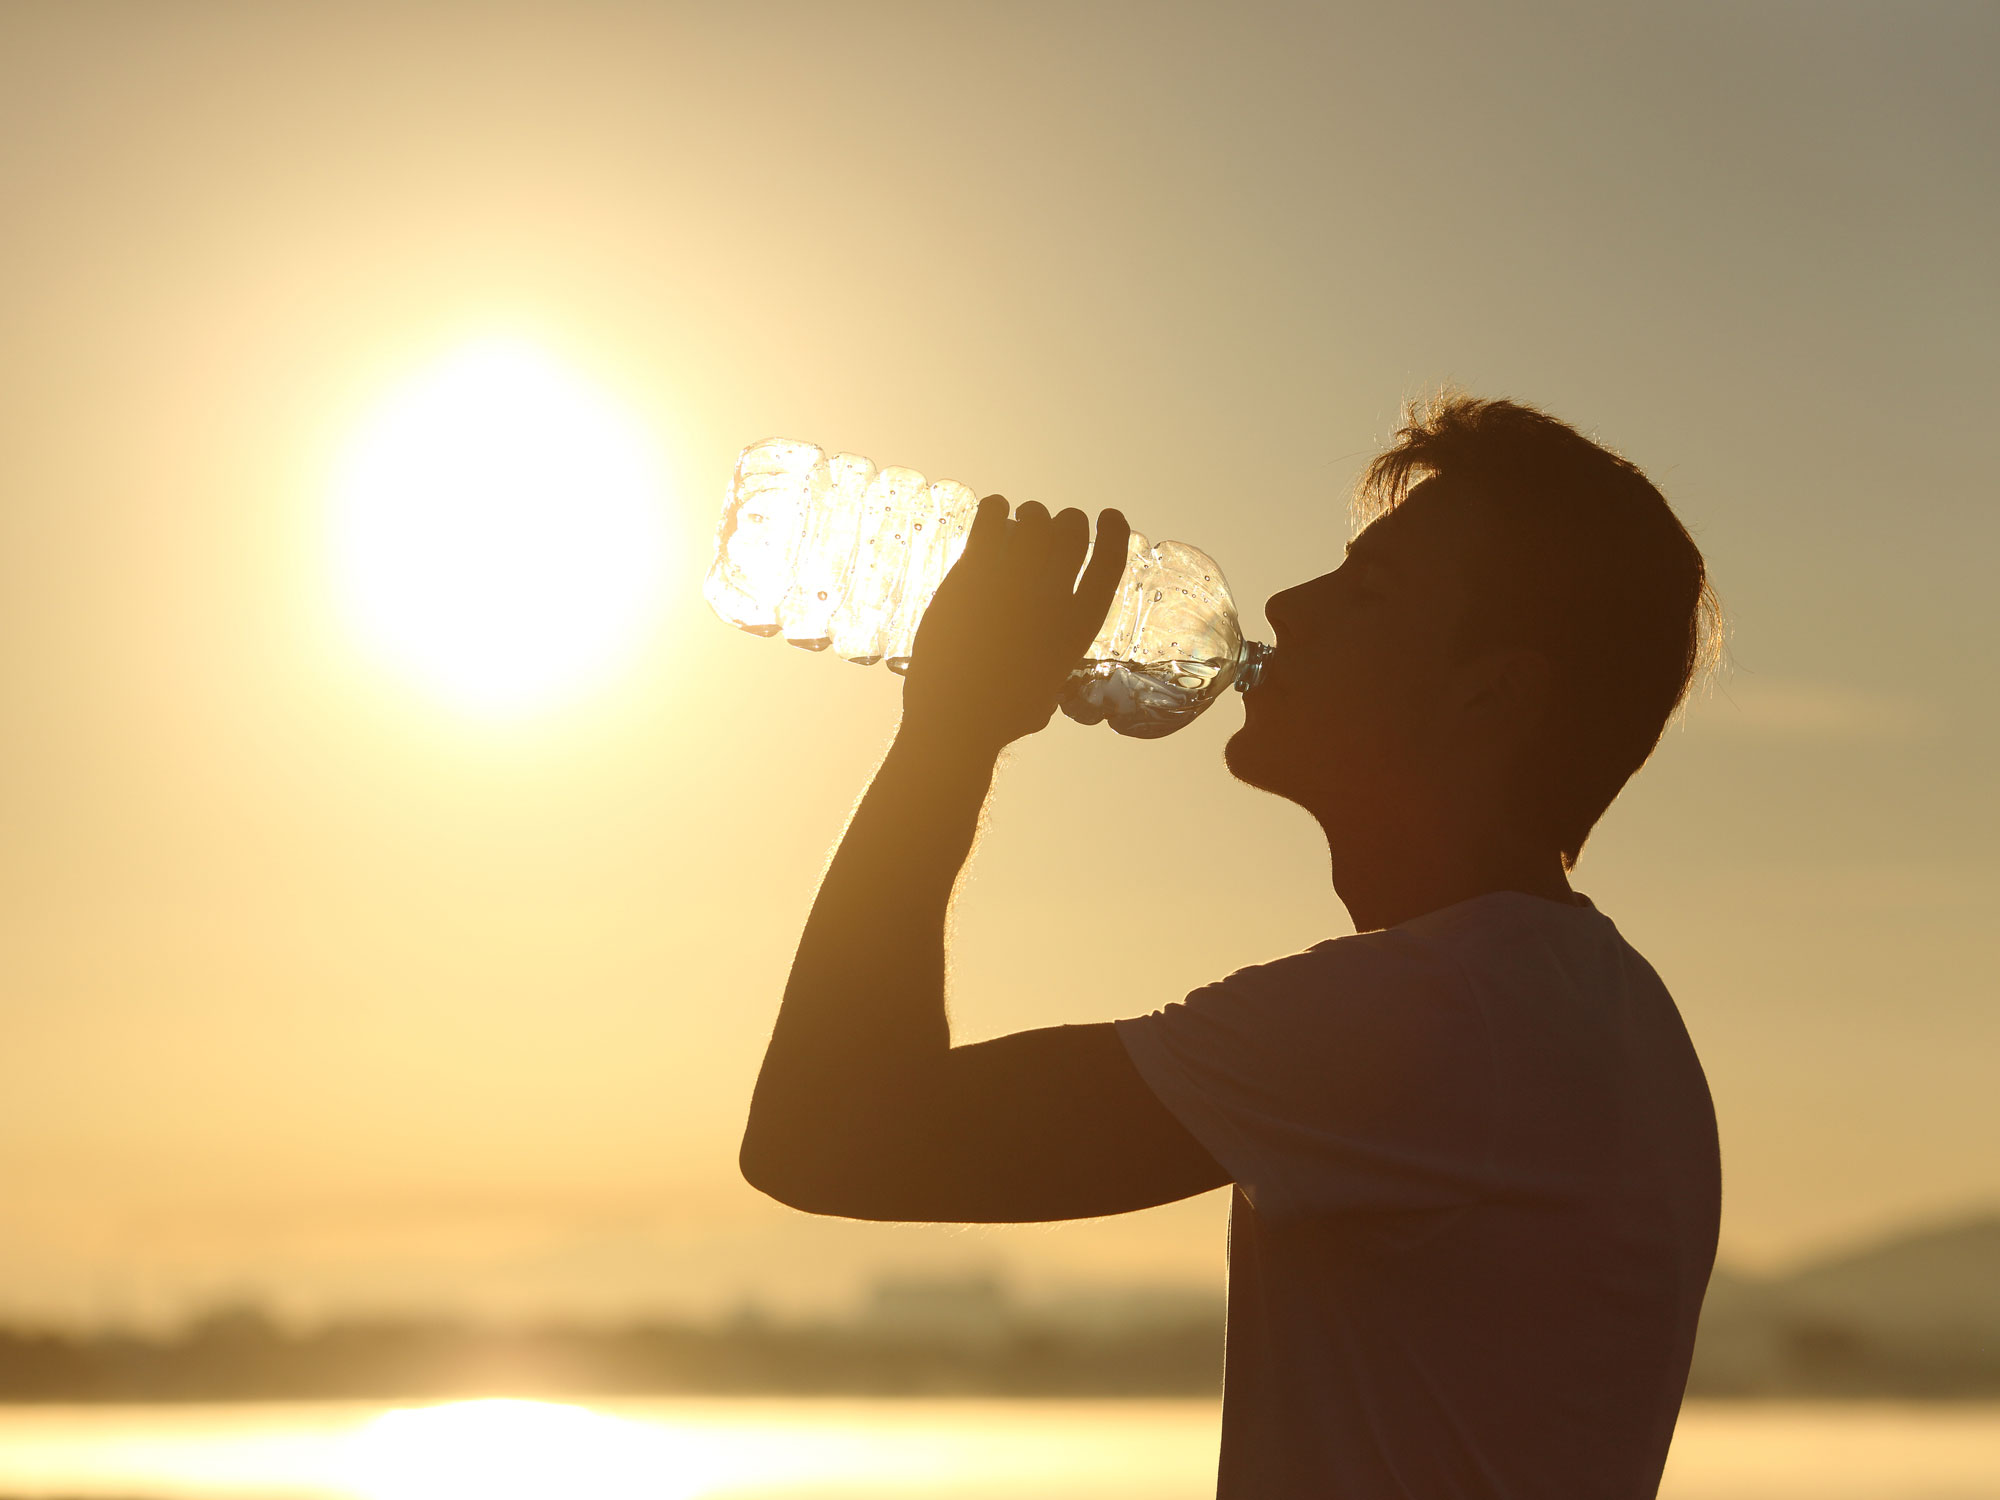 What is added or heat stroke to do in the Heat?